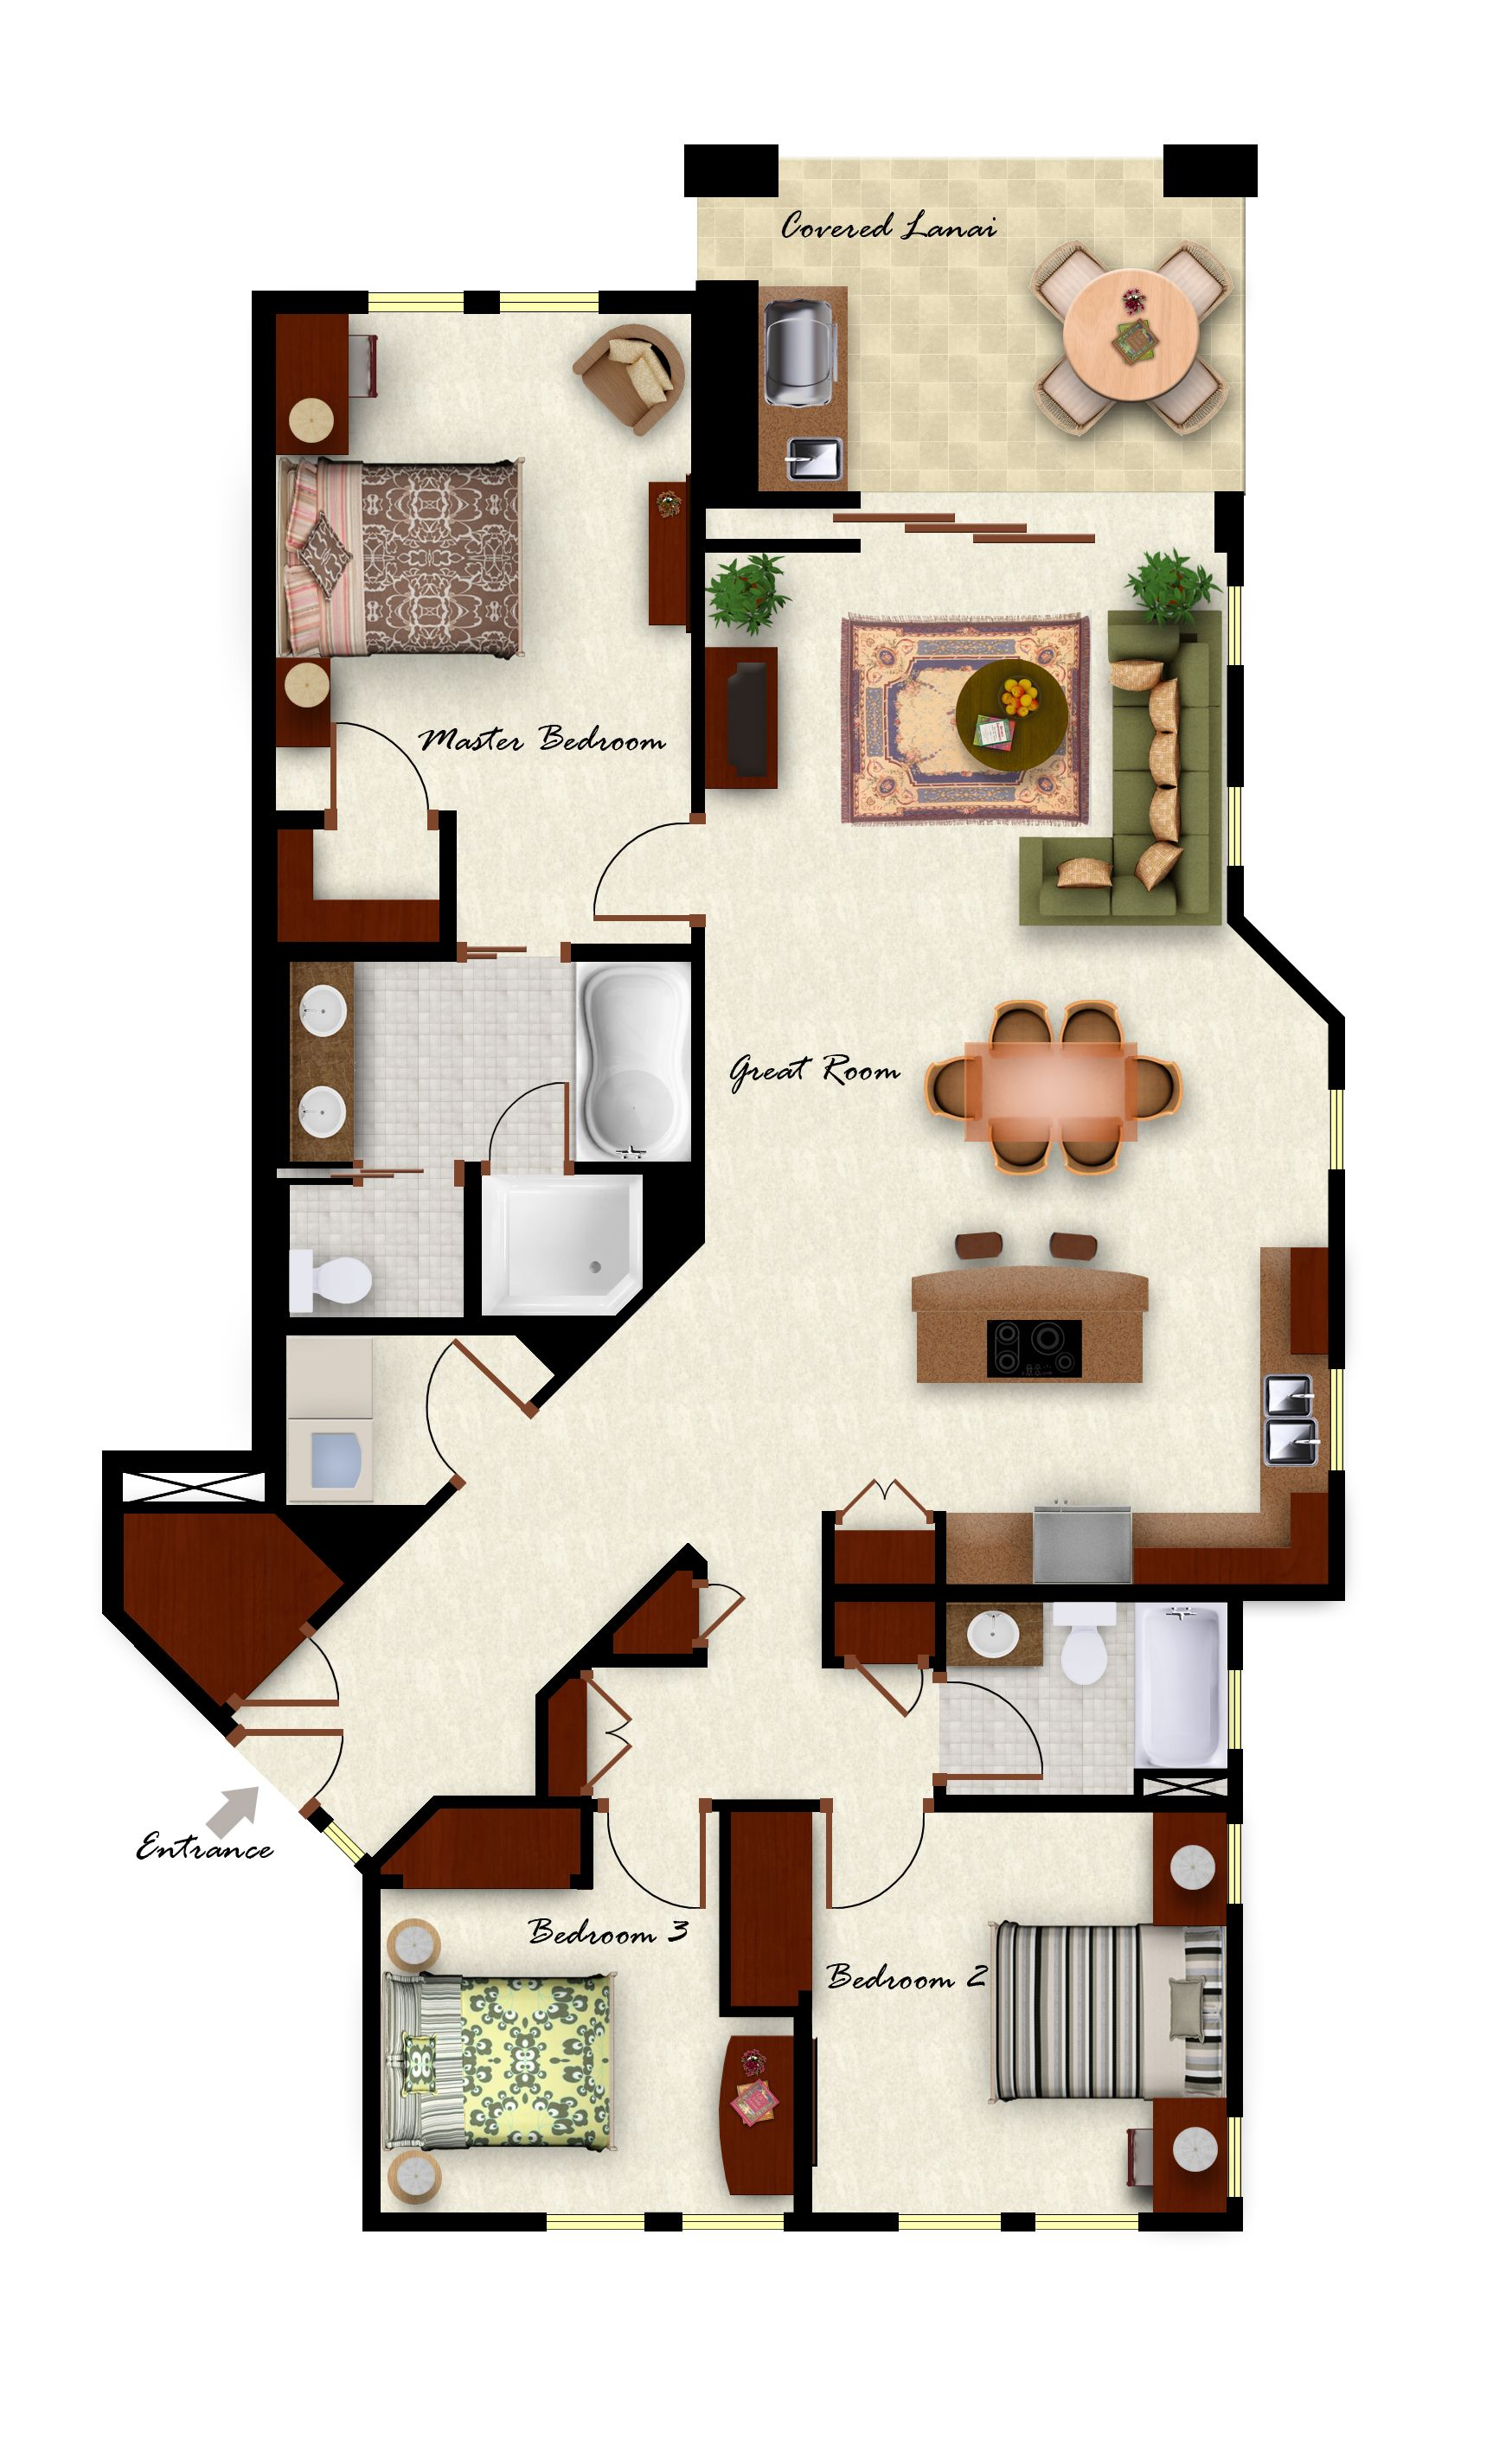 Top 25 ideas about Floor Plans on Pinterest Bedroom apartment